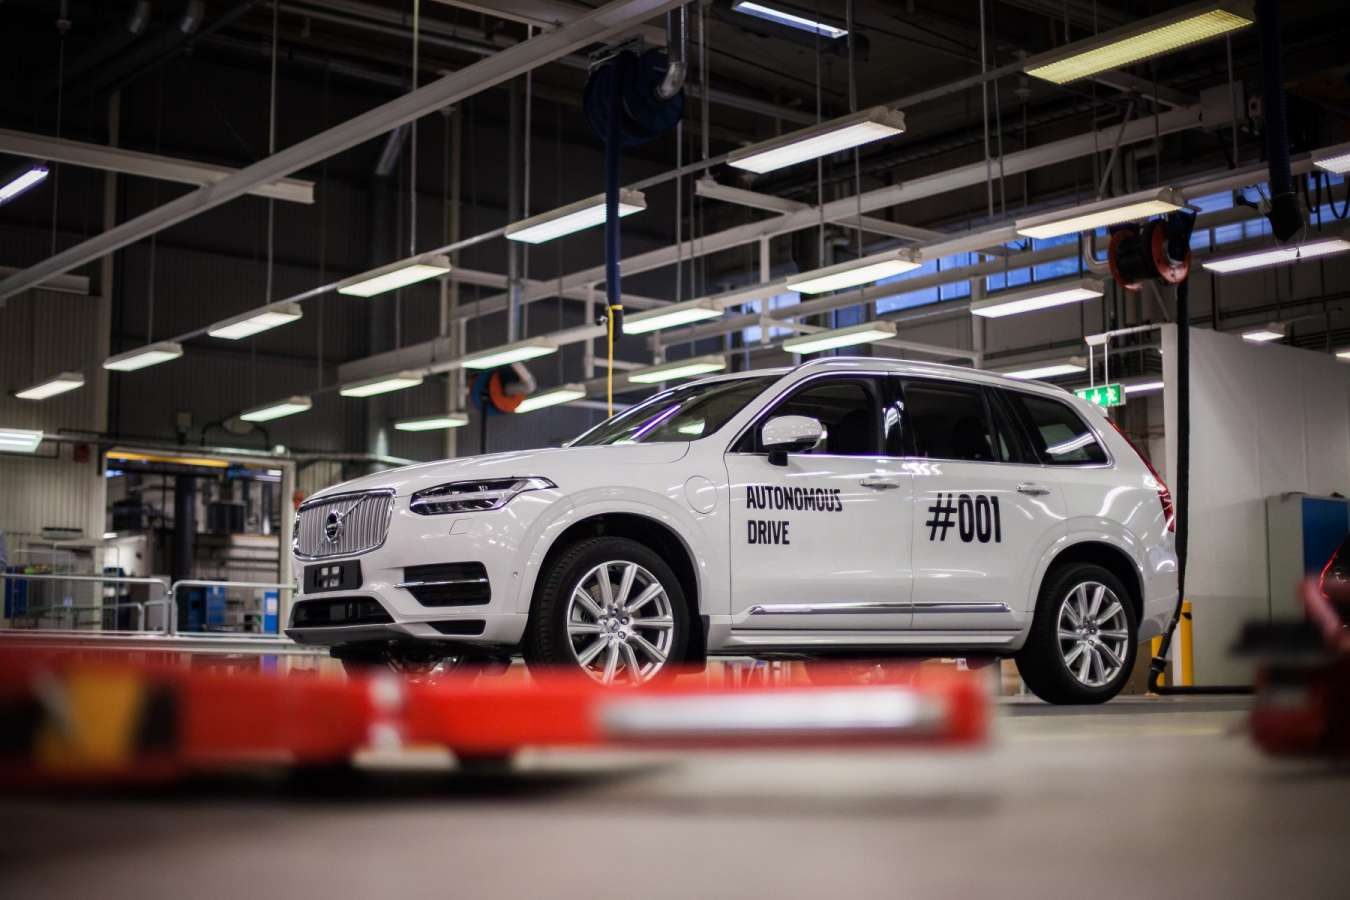 Volvo self-driving cars Zenuity